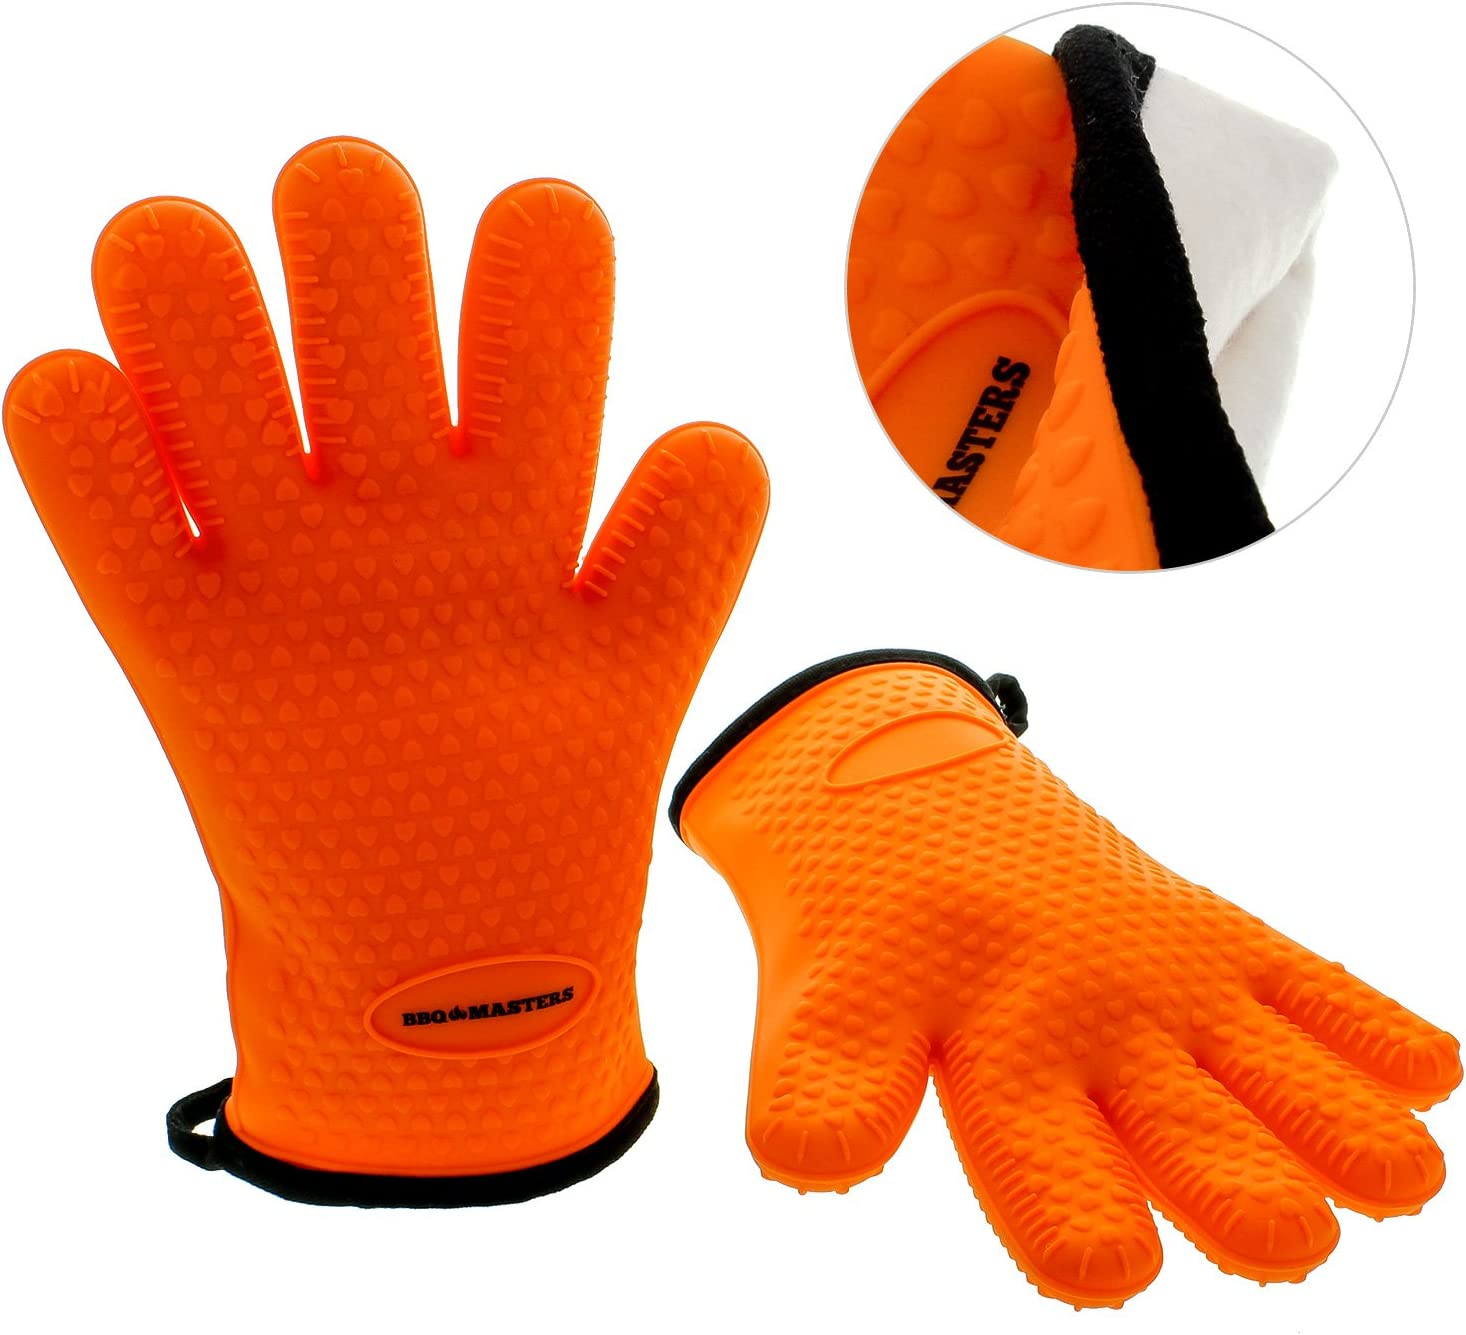 TCP Global BBQ Master Heat Resistant Silicone Cooking Gloves with Protective Insulated Cloth Lining - Safe Kitchen Oven Mitts for Baking, Handling Hot Pots & Pans - Ideal for Barbecue Grilling